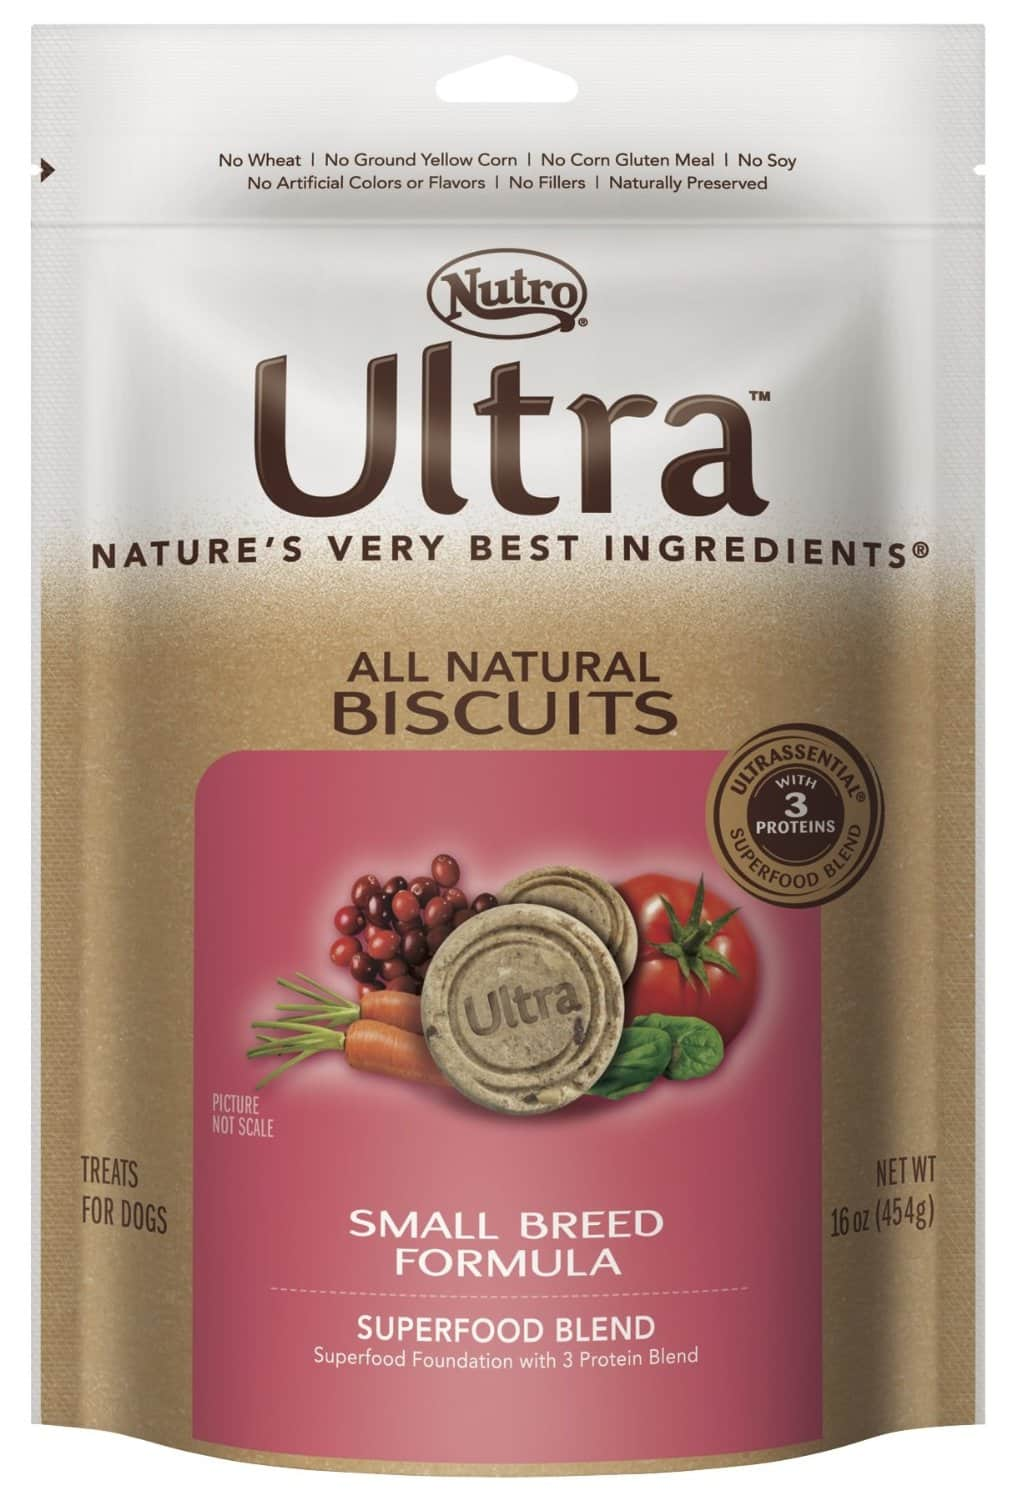 16oz Nutro Ultra All Natural Dog Biscuits for Small Breeds  $2.30 + Free Shipping